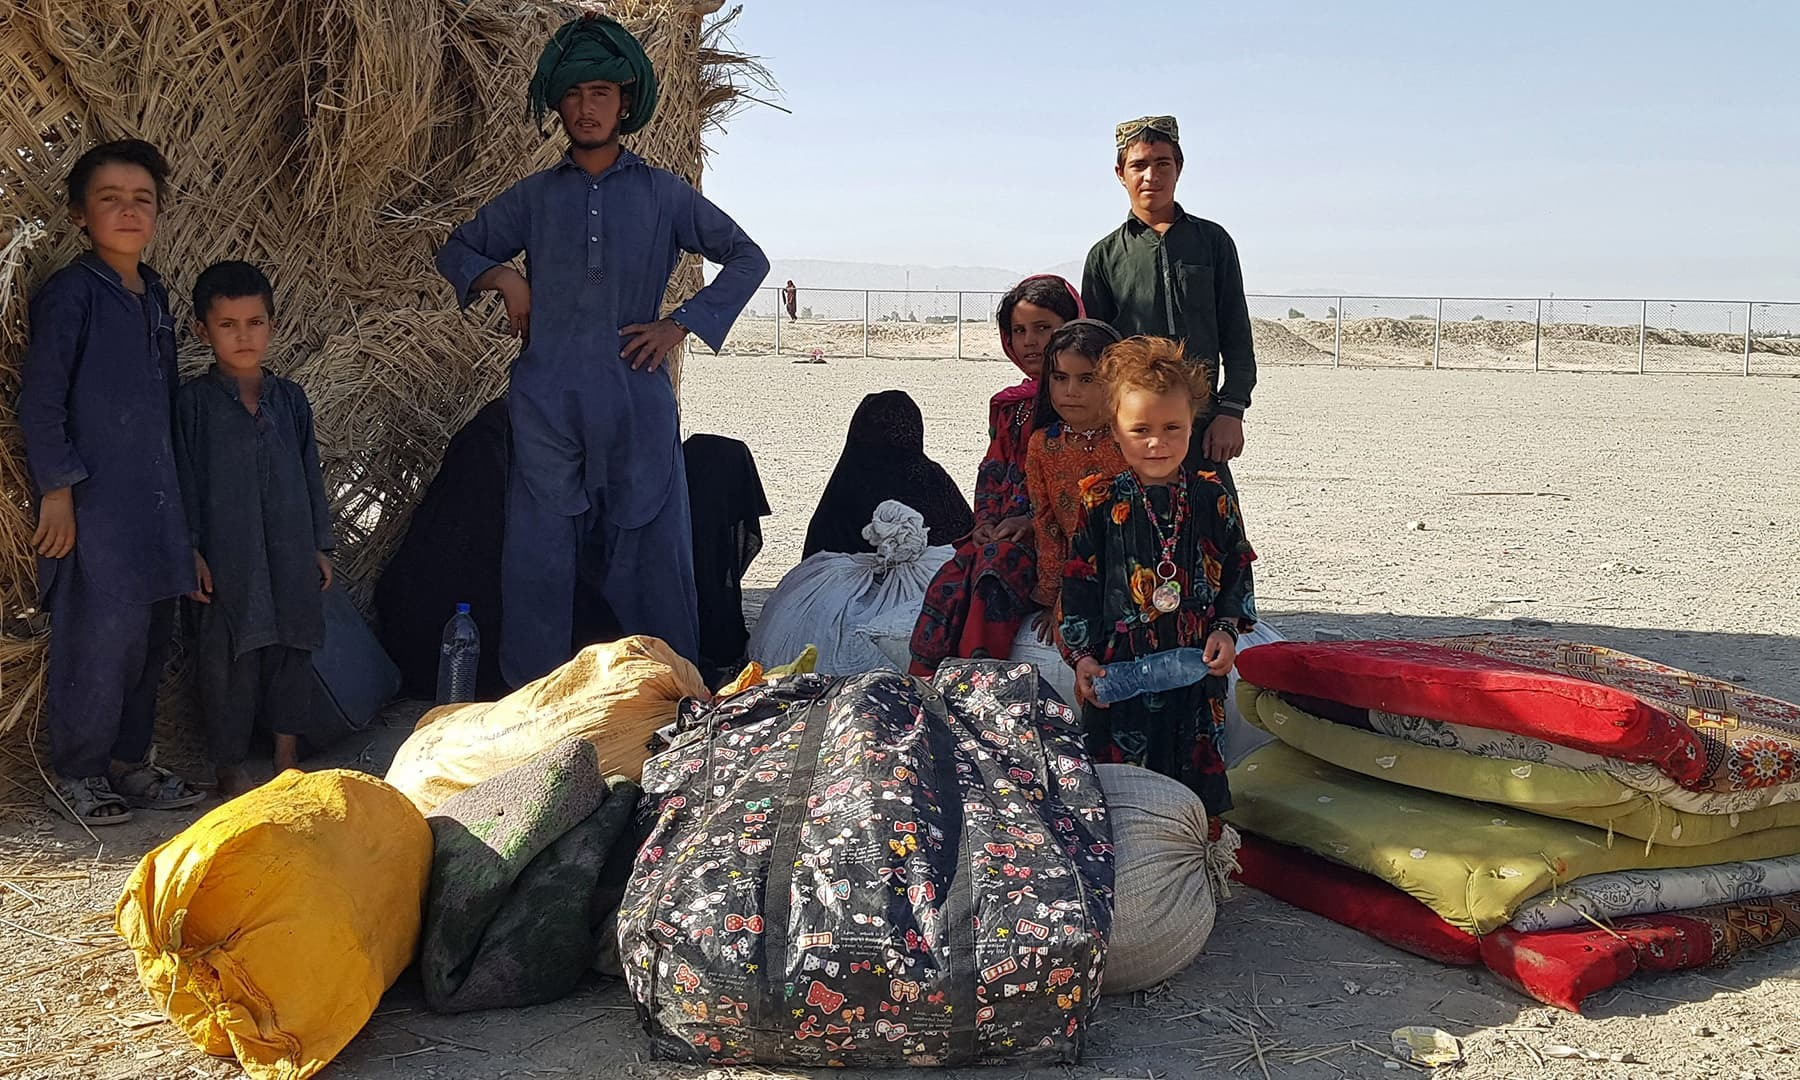 TOPSHOT - A stranded Afghan family waits for the reopening of the Pakistan-Afghanistan border crossing point in Chaman on August 13, 2021, after the Taliban took control of the Afghan border town in a rapid offensive across the country. (Photo by - / AFP) — AFP or licensors